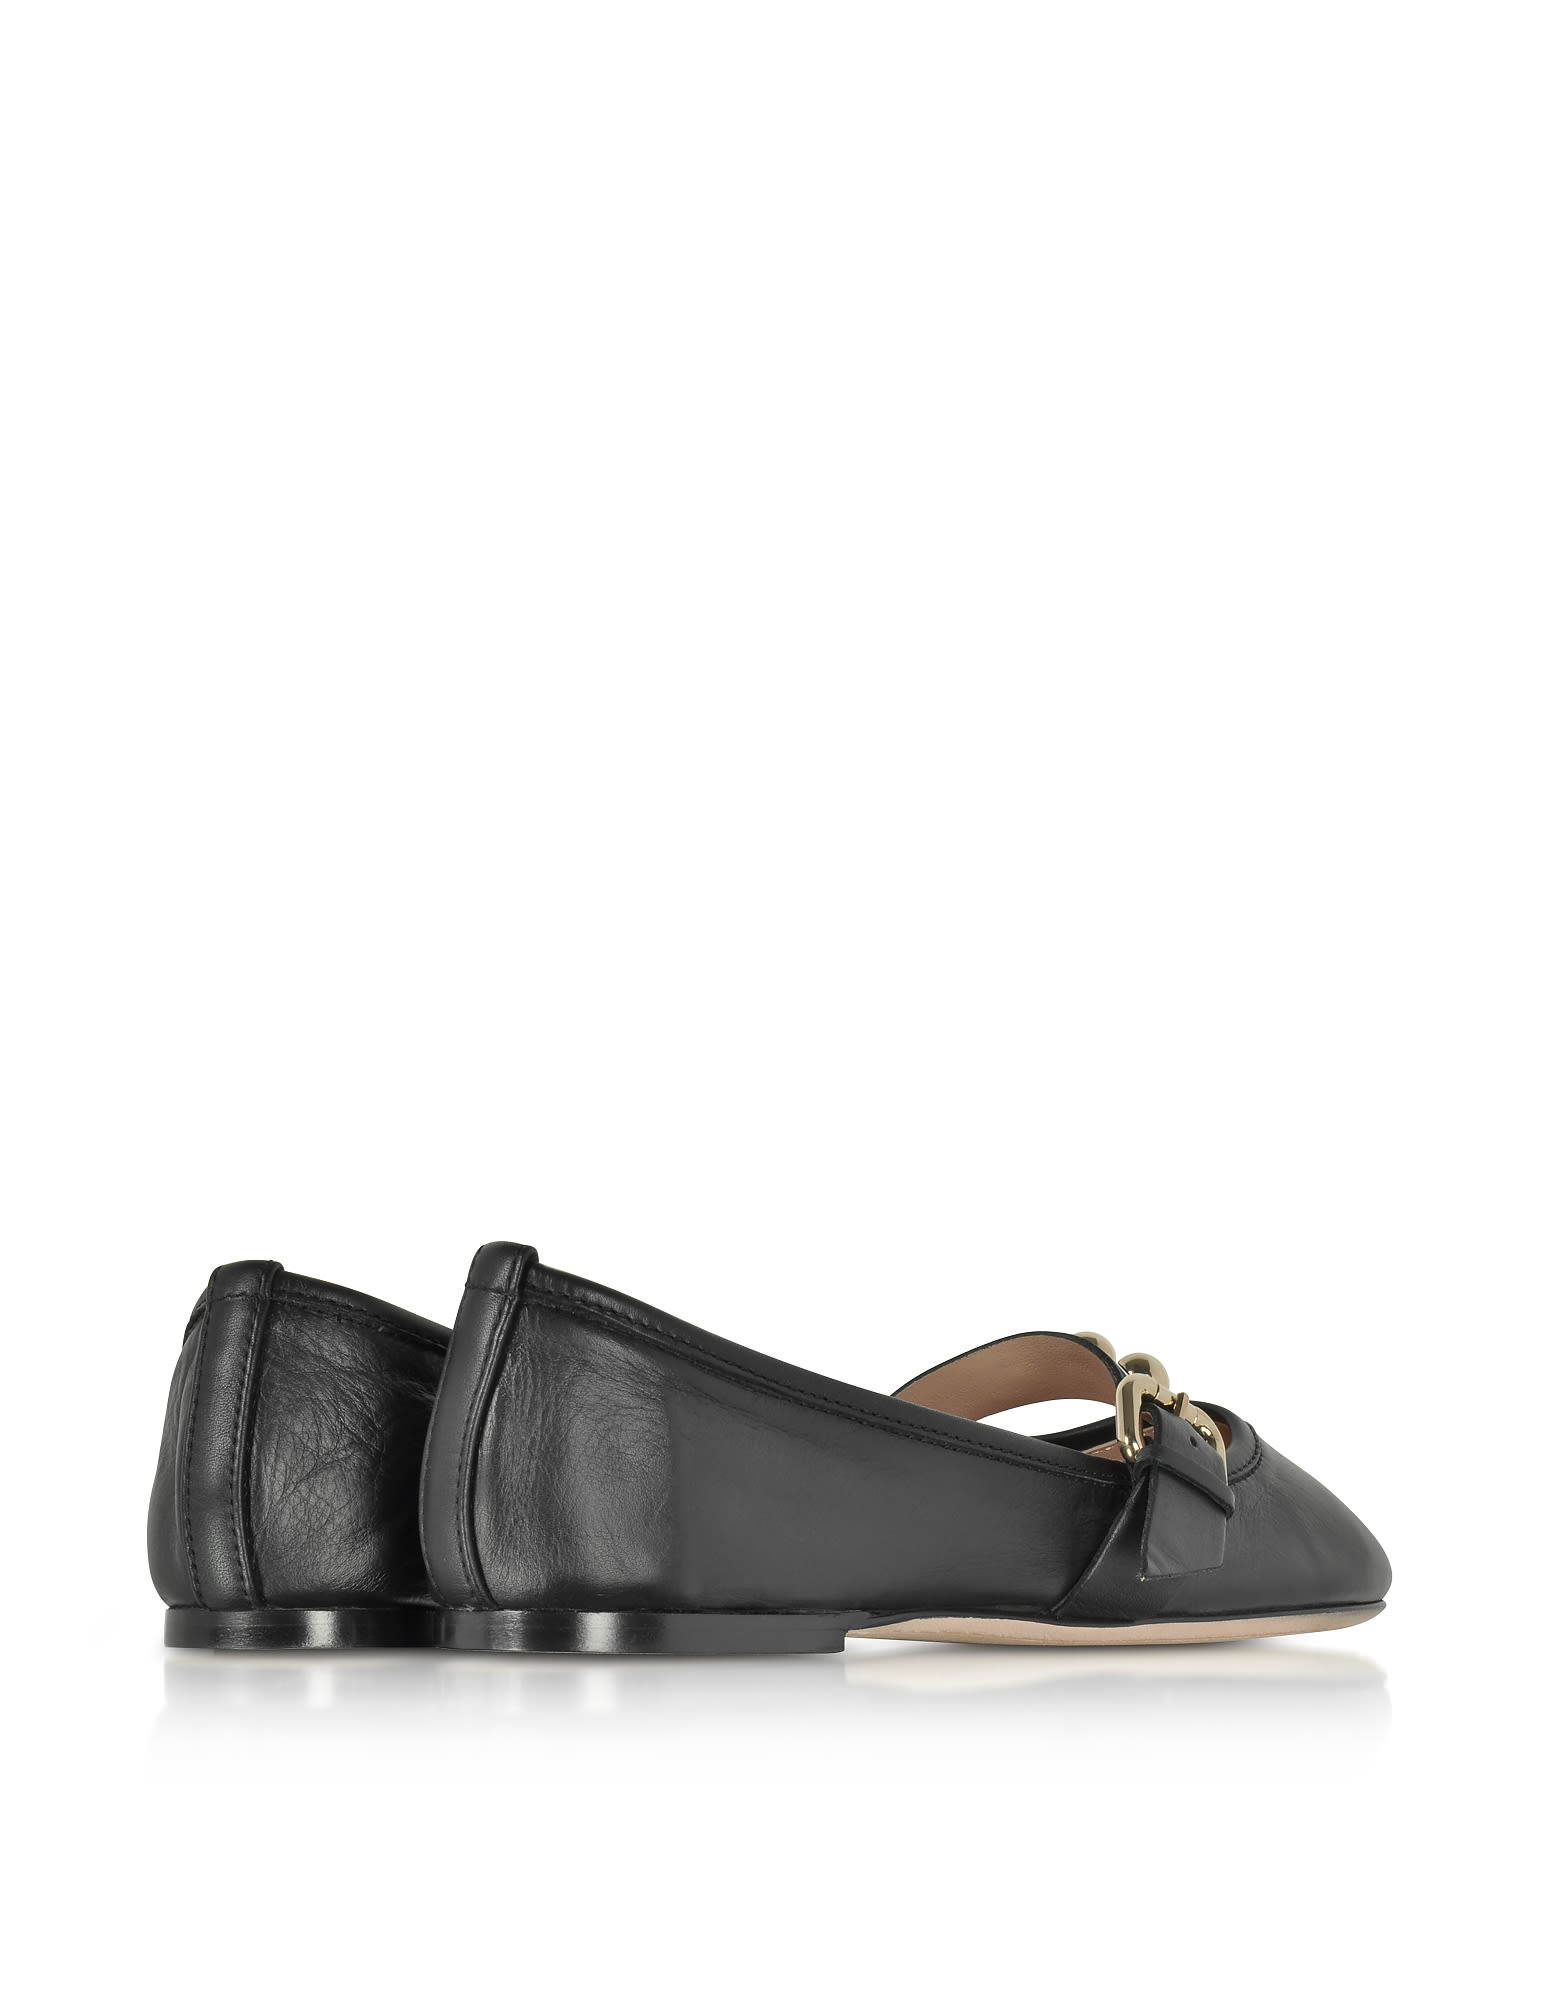 RED Valentino Leather Flat Ballerinas W-buckle And Studs Free Shipping Clearance Buy Cheap Latest Collections Purchase 6dhSgk